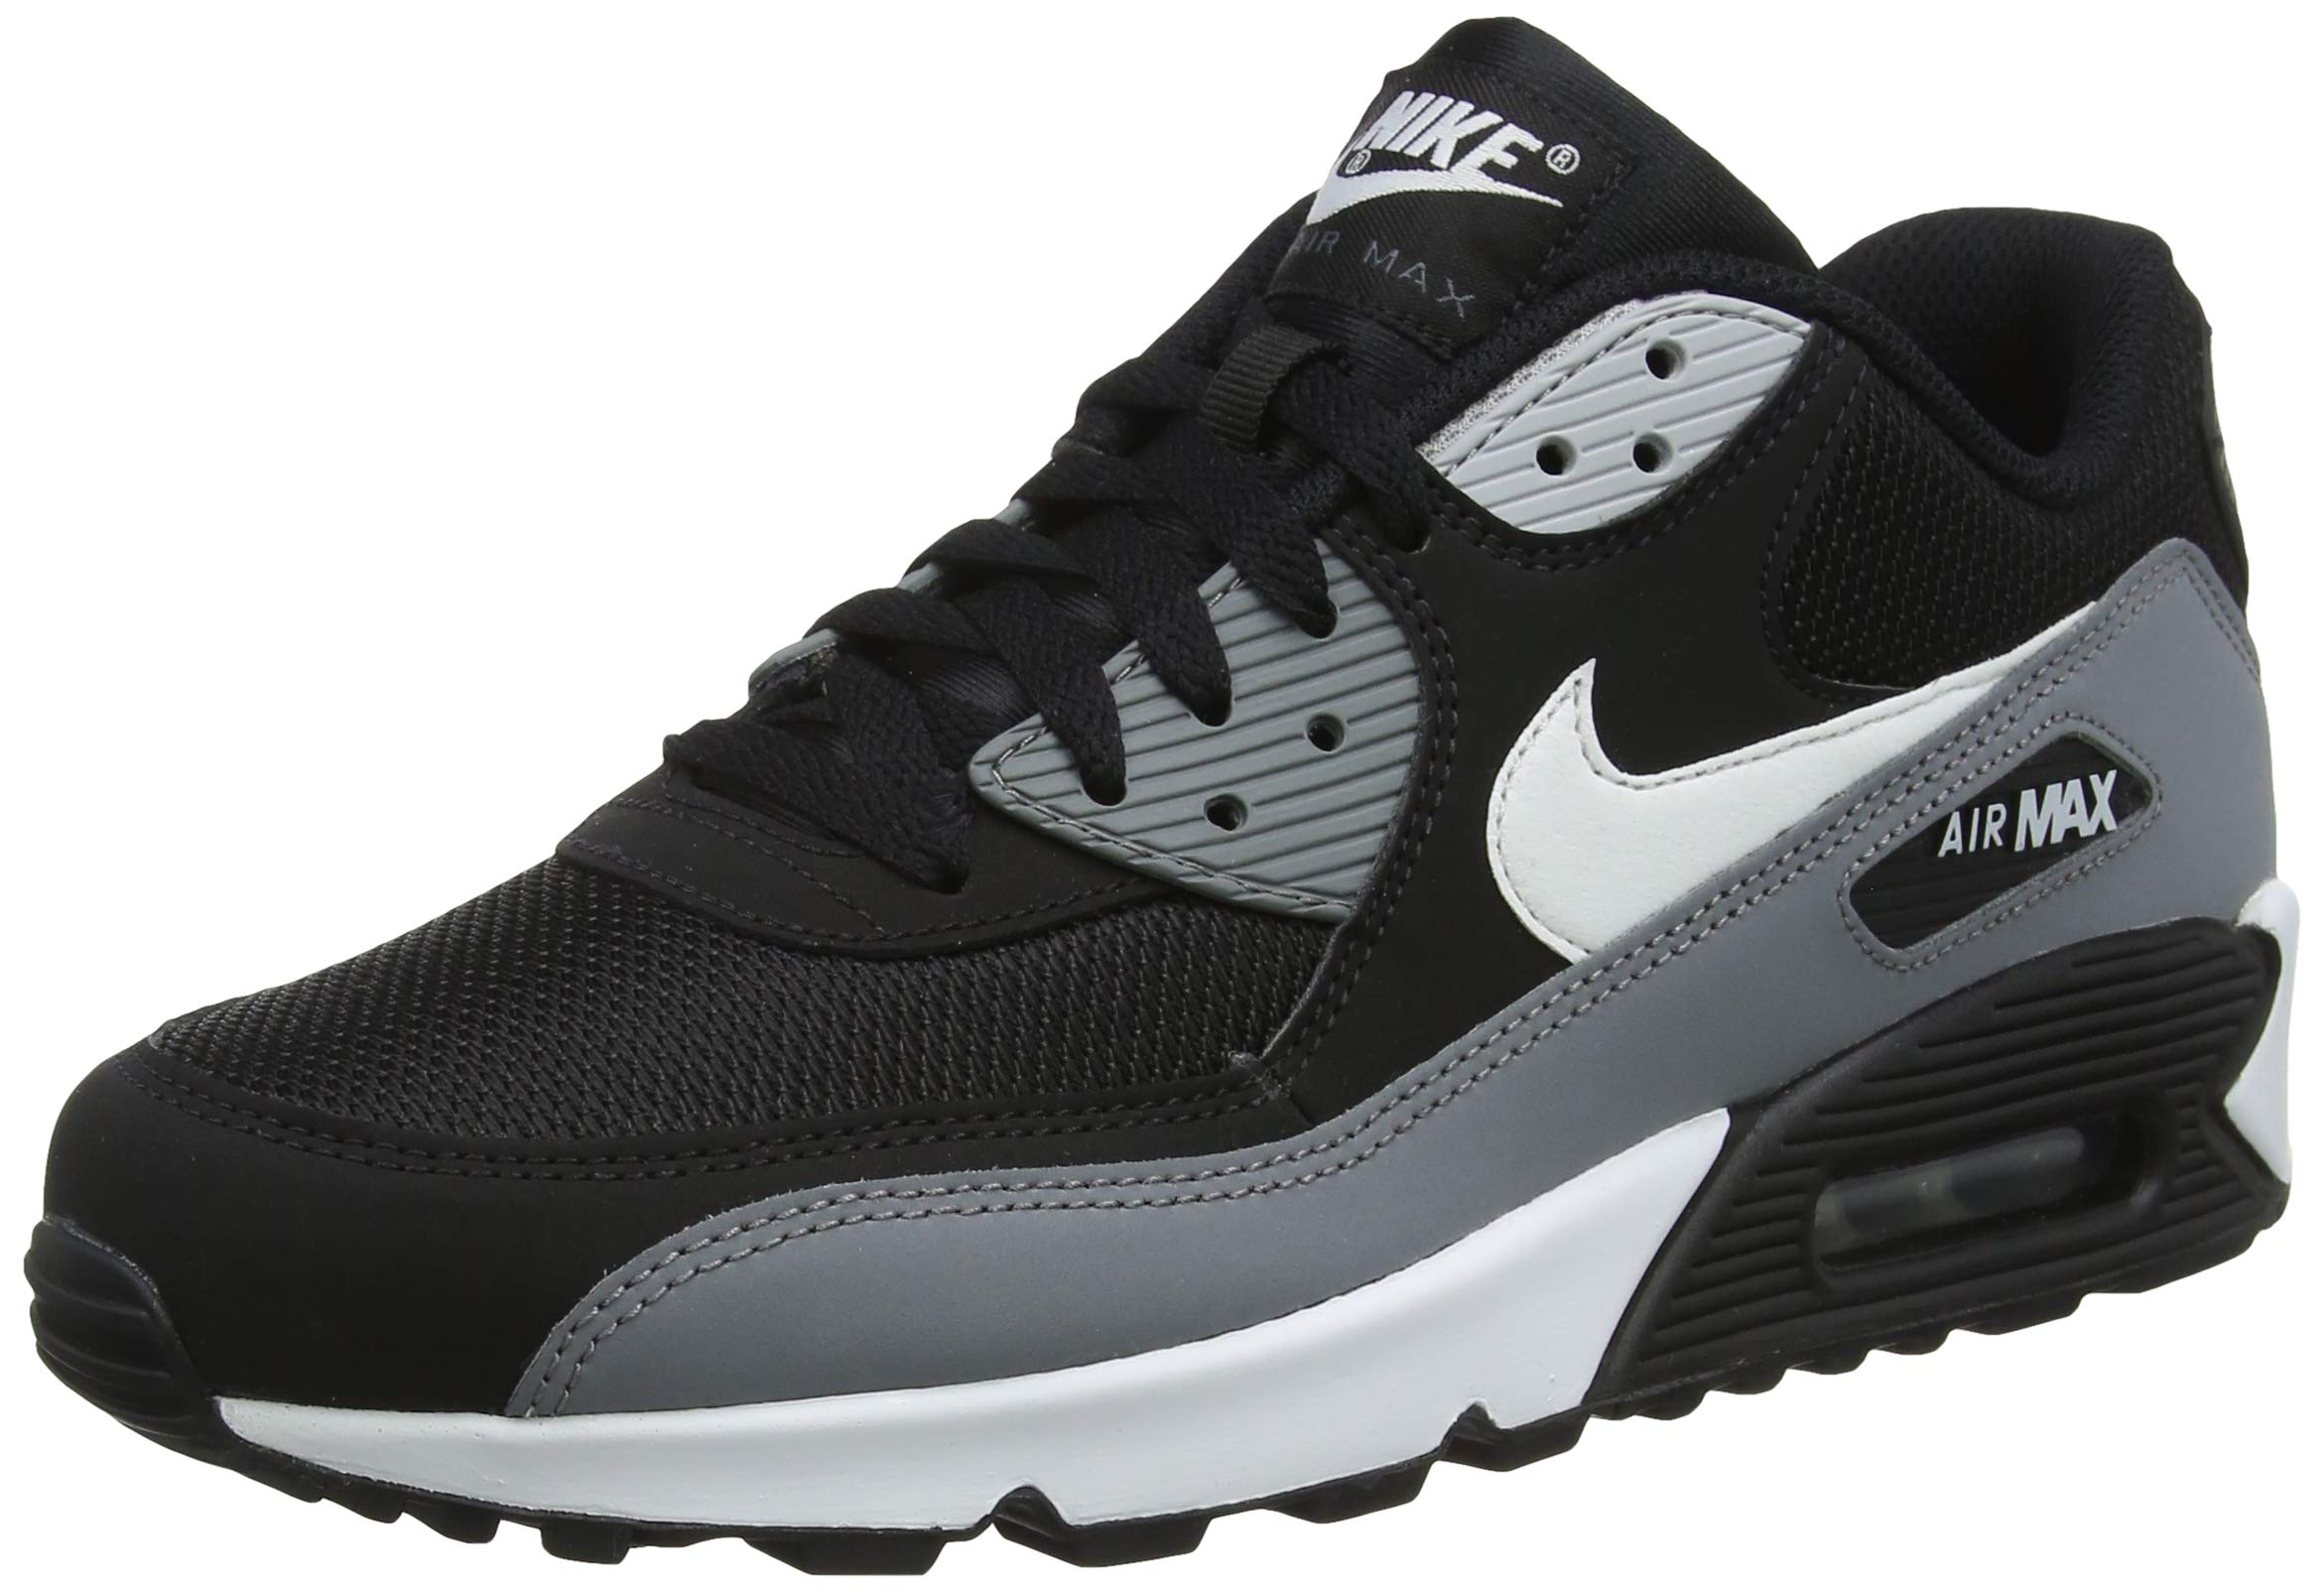 on sale db607 e3e78 Galleon - Nike Mens Air Max 90 Essential Running Shoes Black White Cool Grey Anthracite  AJ1285-018 Size 11.5